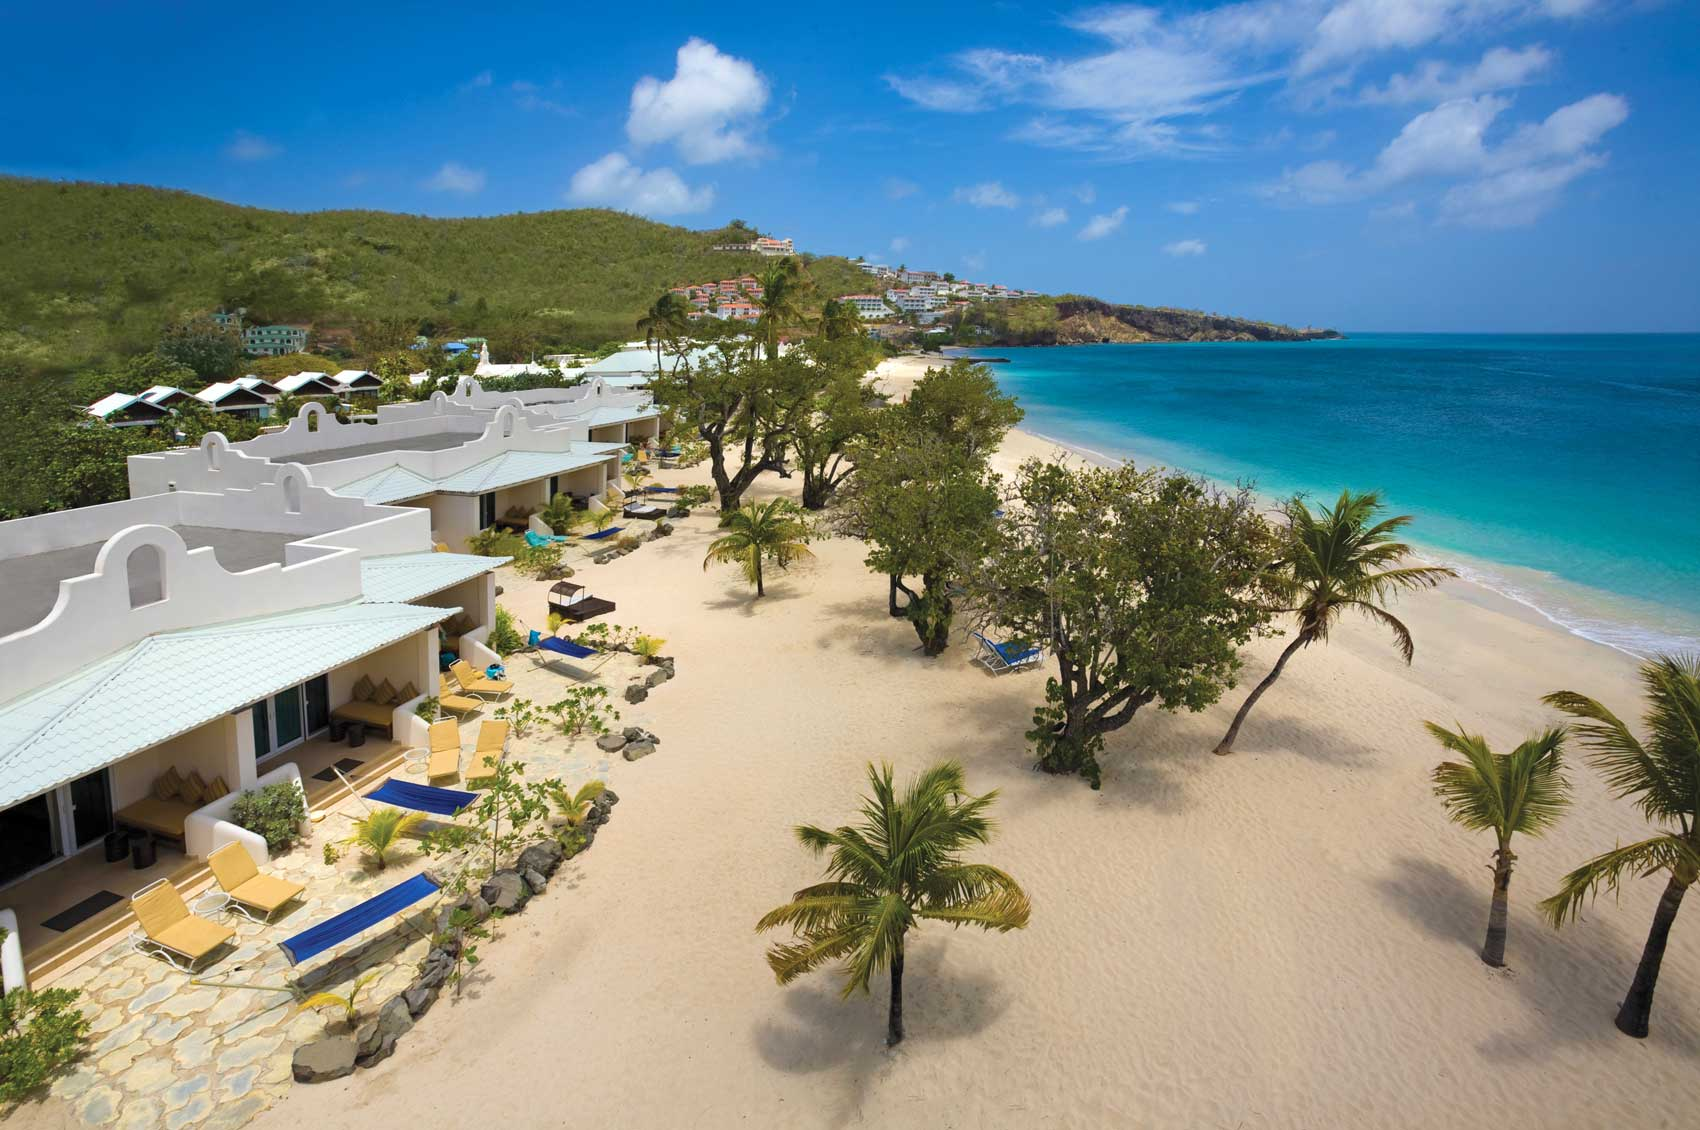 AllInclusive Resorts Worth Staying In The Caribbean My Carib Spot - All inclusive family resorts caribbean